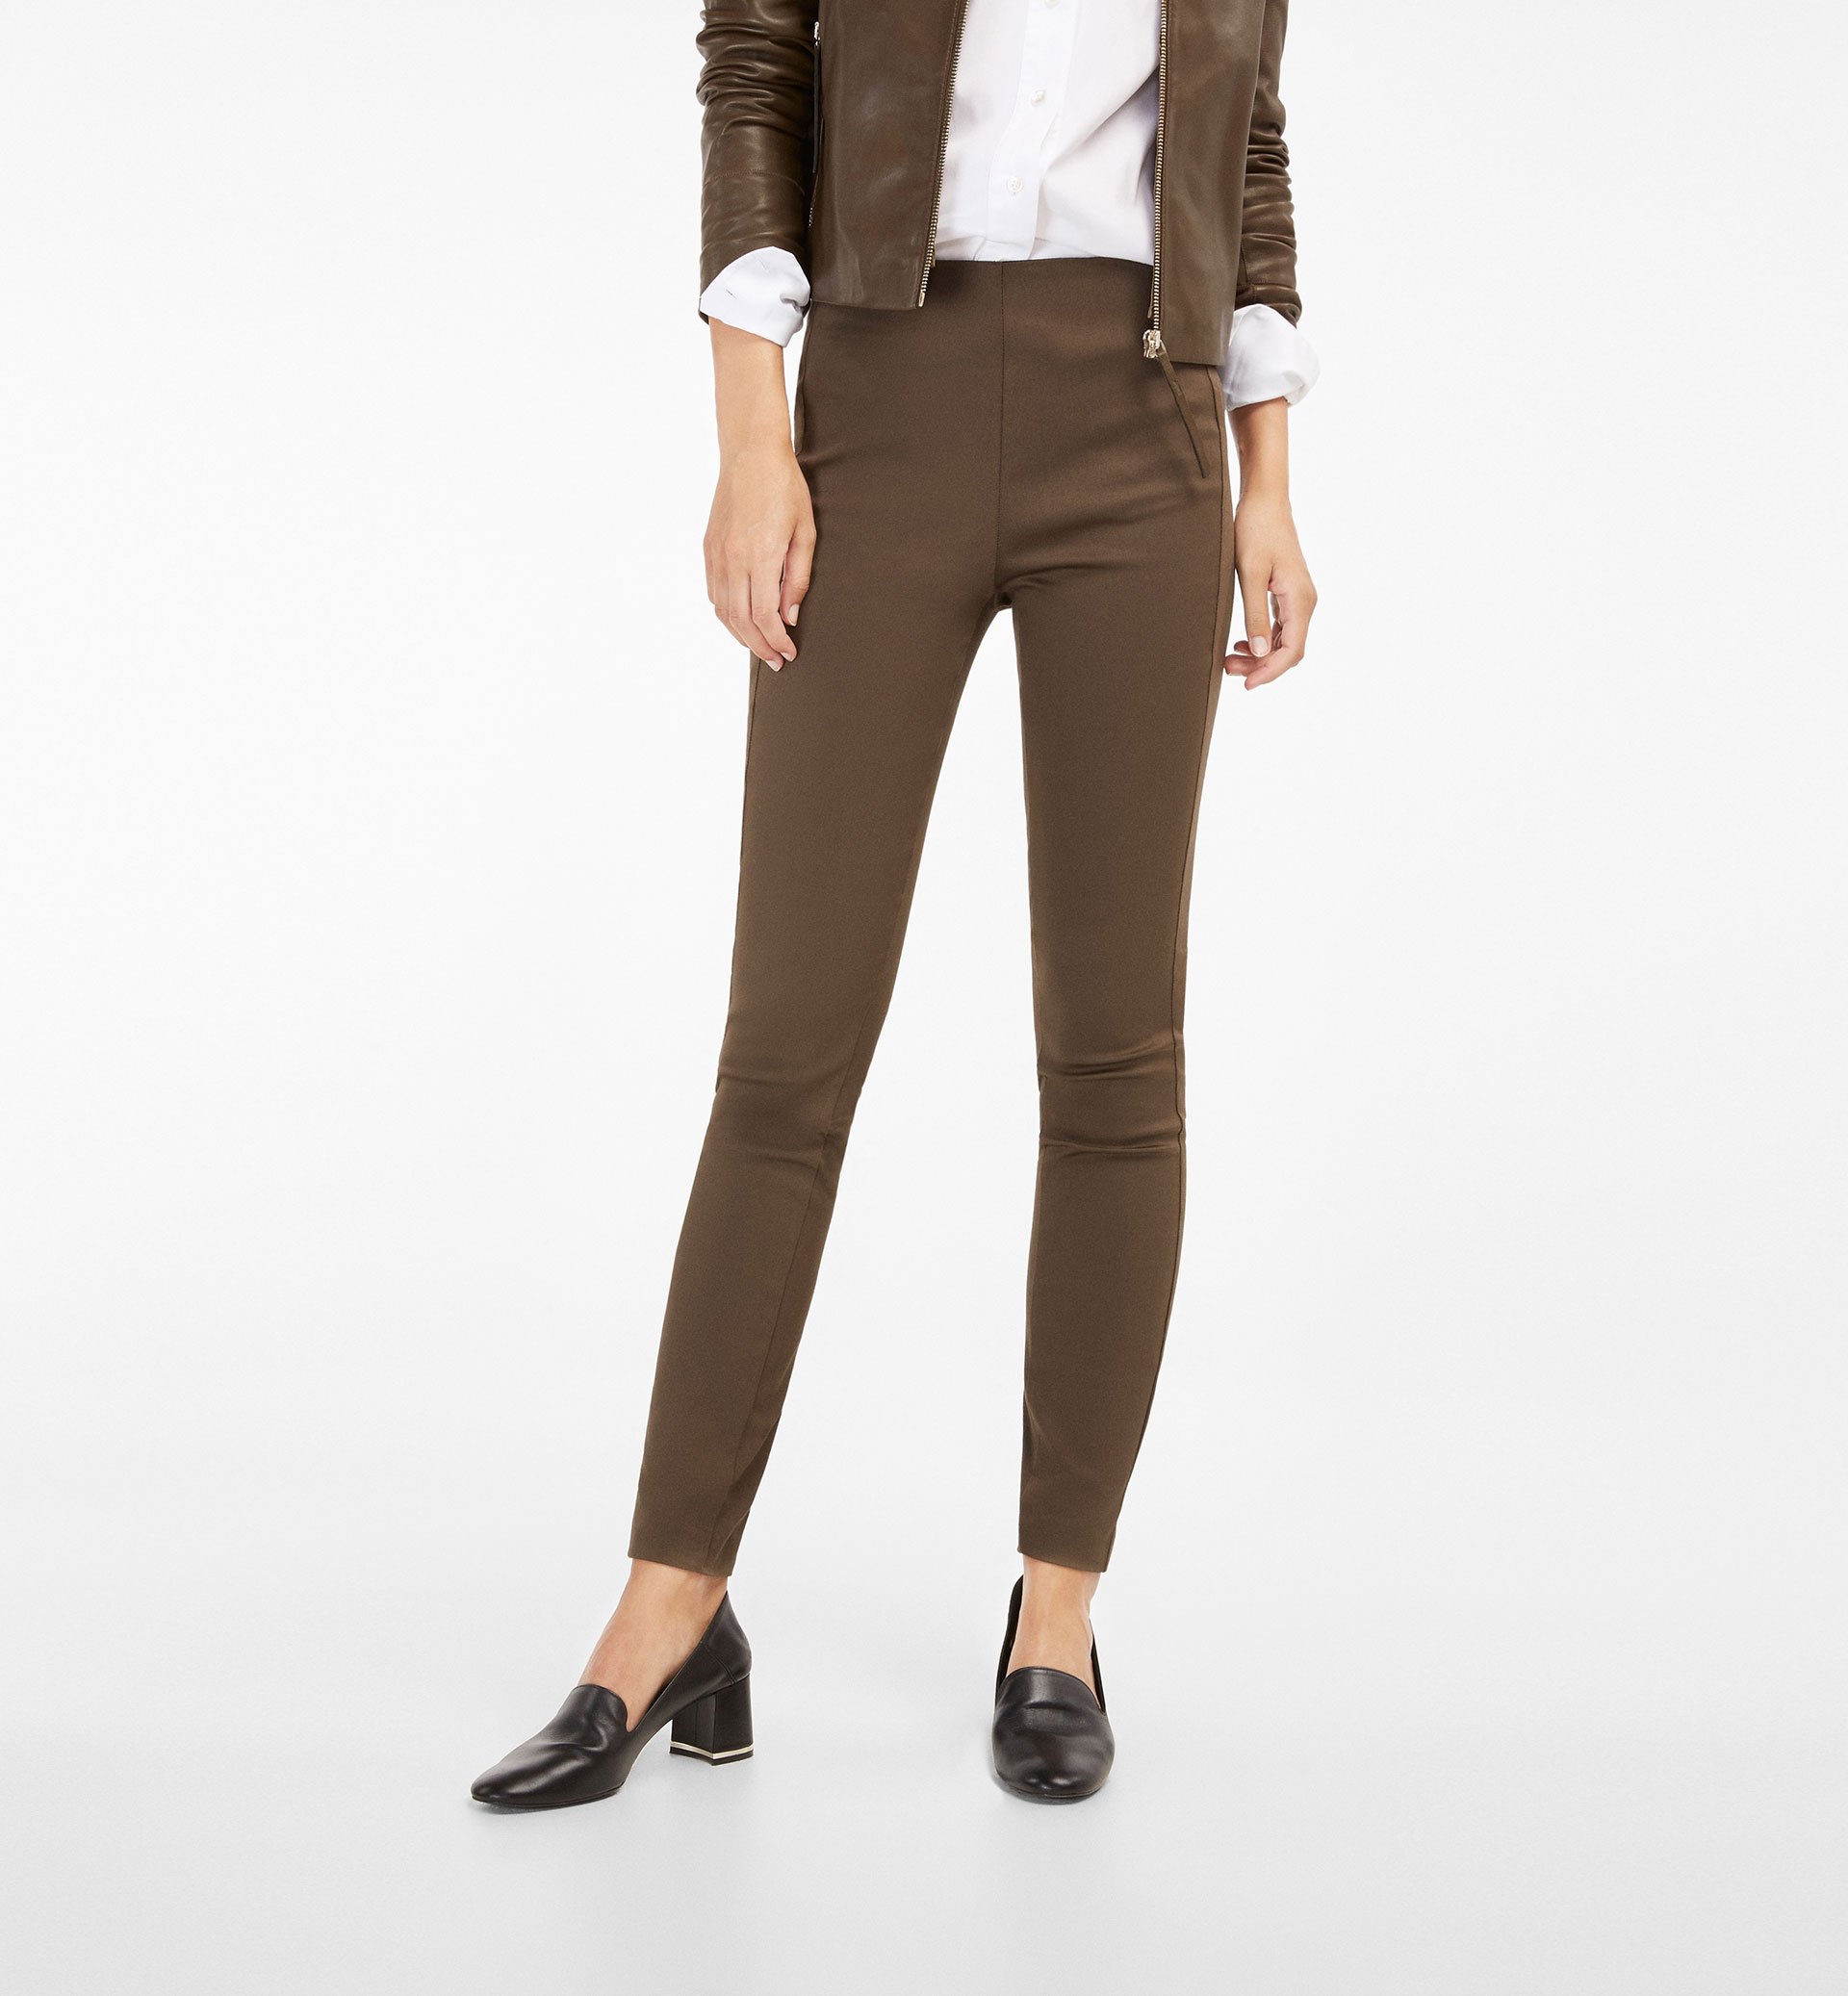 LEGGING-STYLE TROUSERS WITH A SIDE SEAM DETAIL